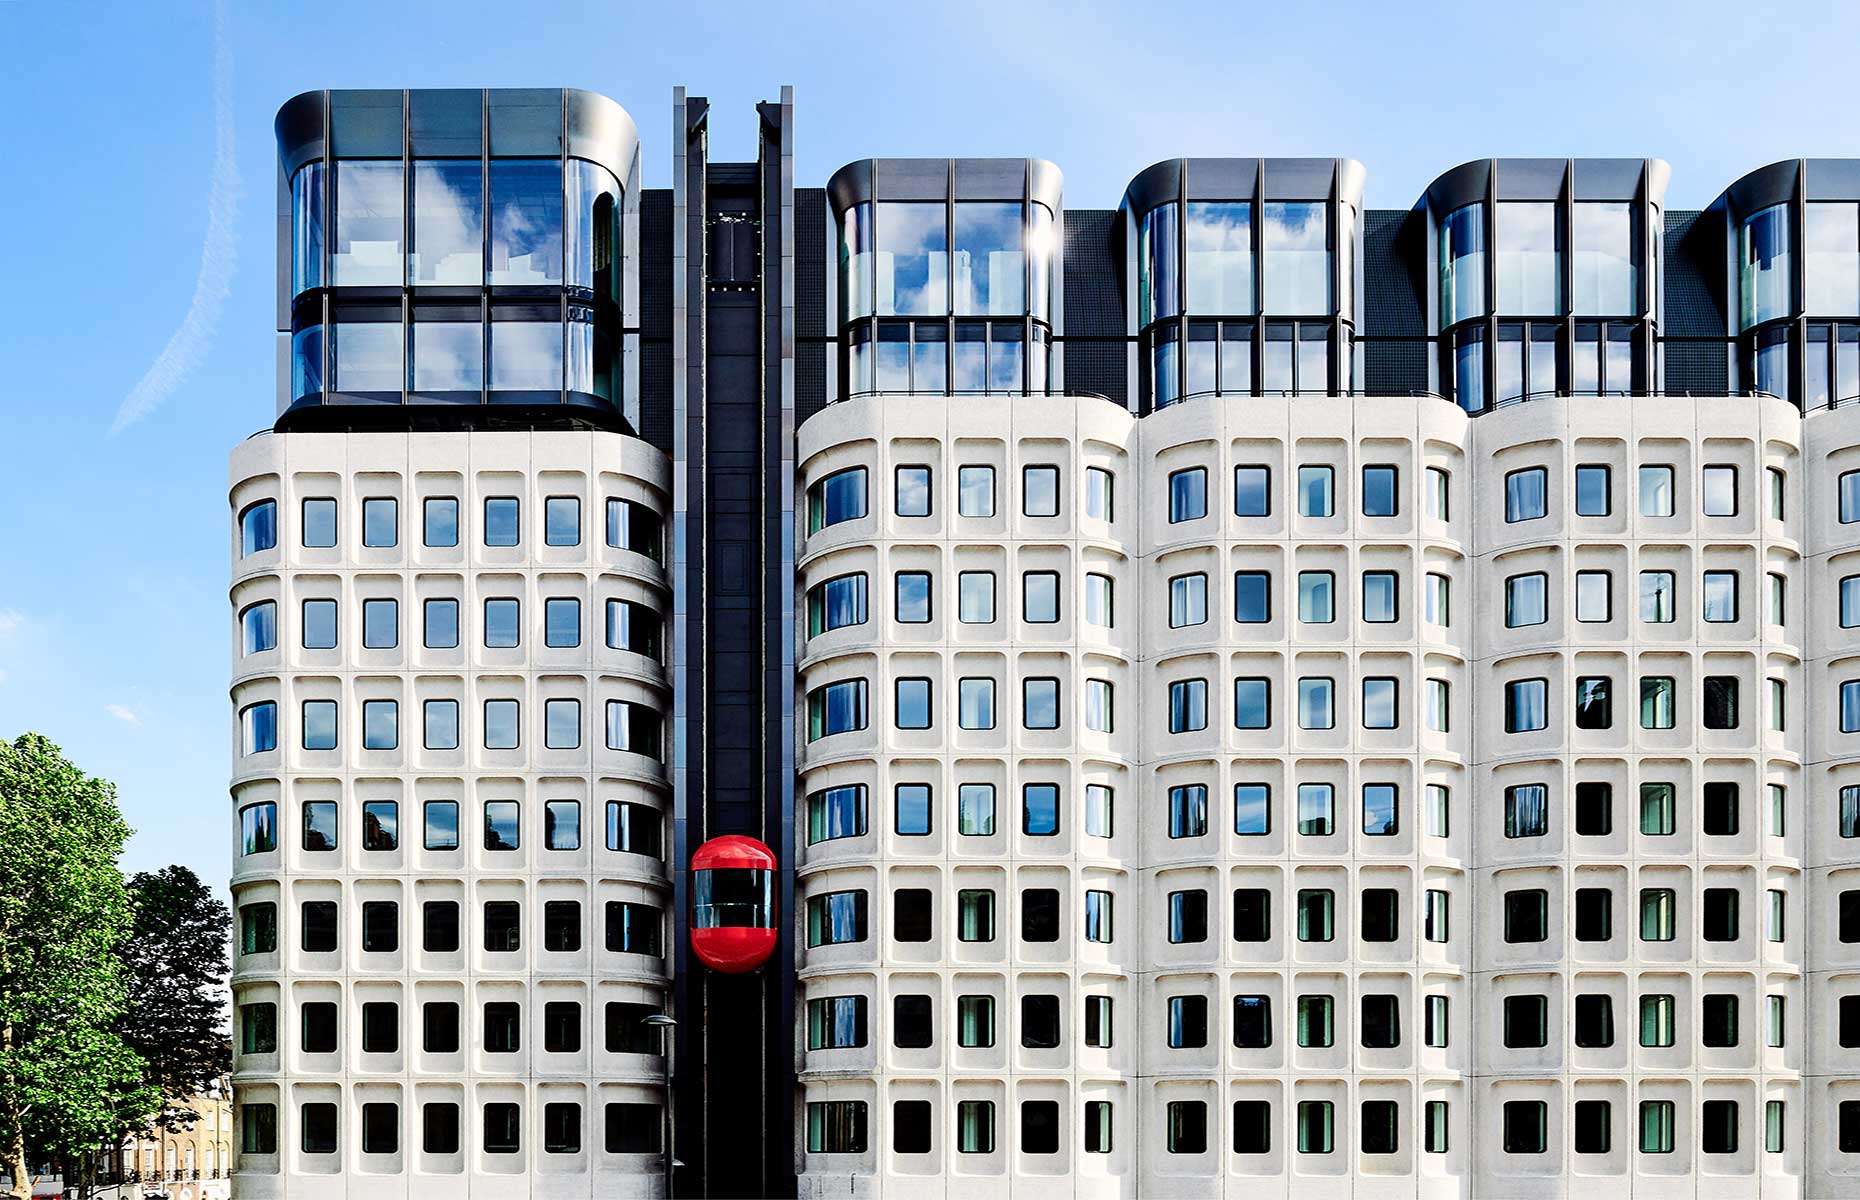 The Standard hotel exterior (Image: David Cleveland/The Standard)